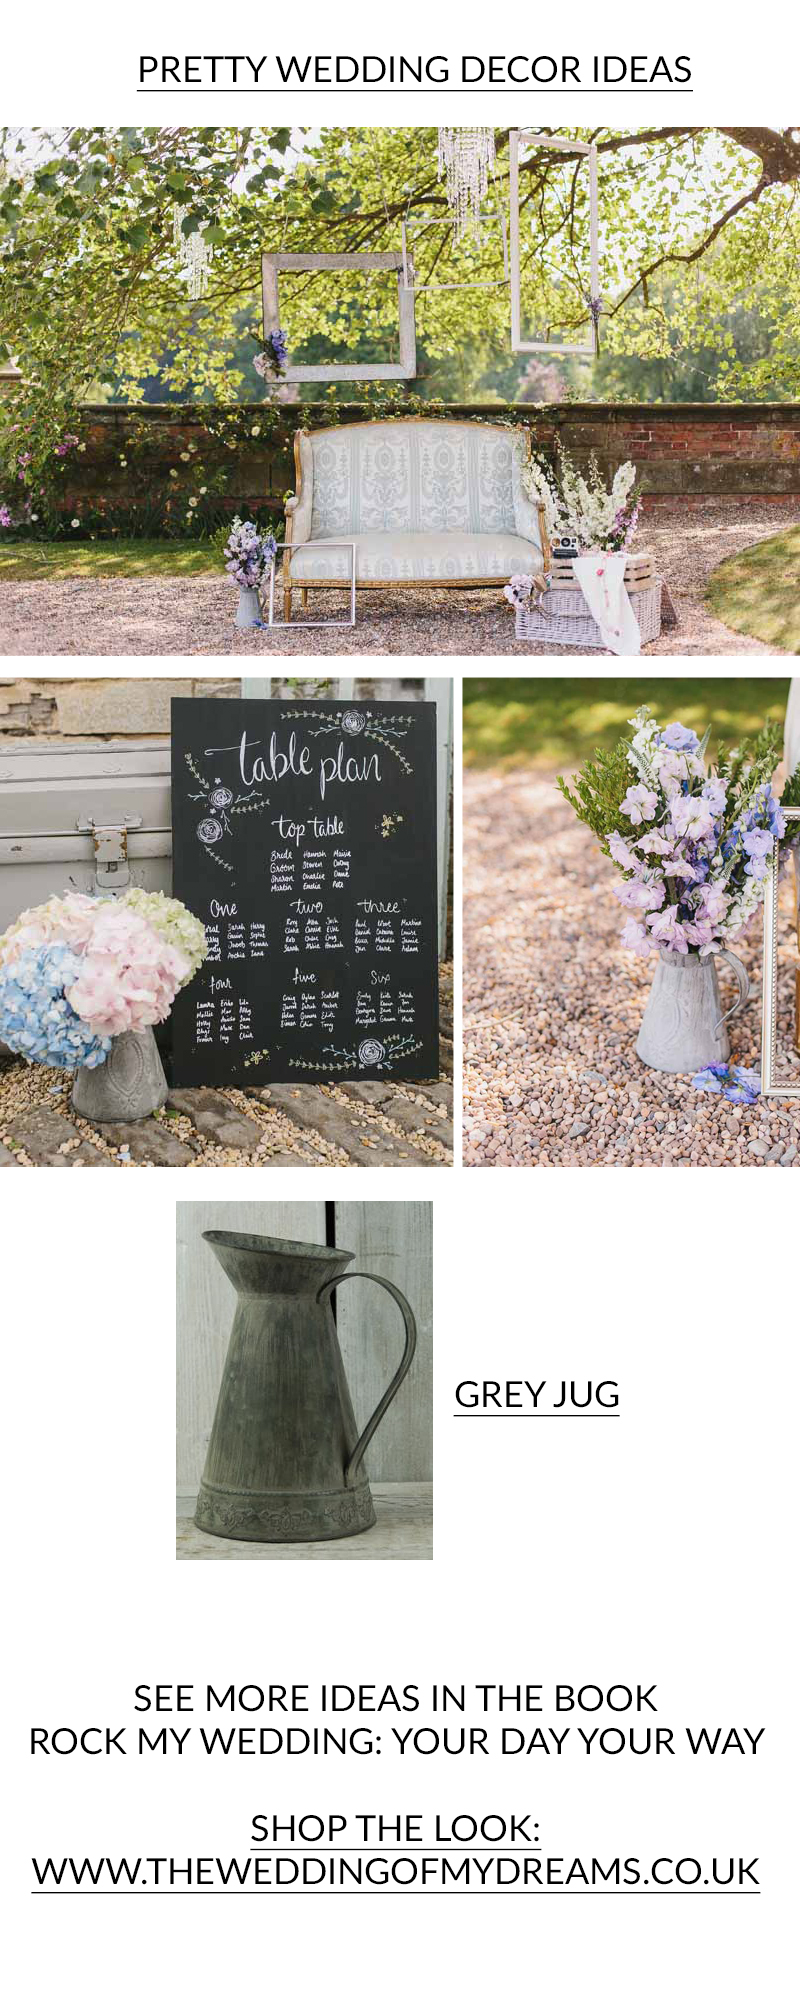 PRETTY WEDDING DECOR IDEAS from Rock My Wedding Book